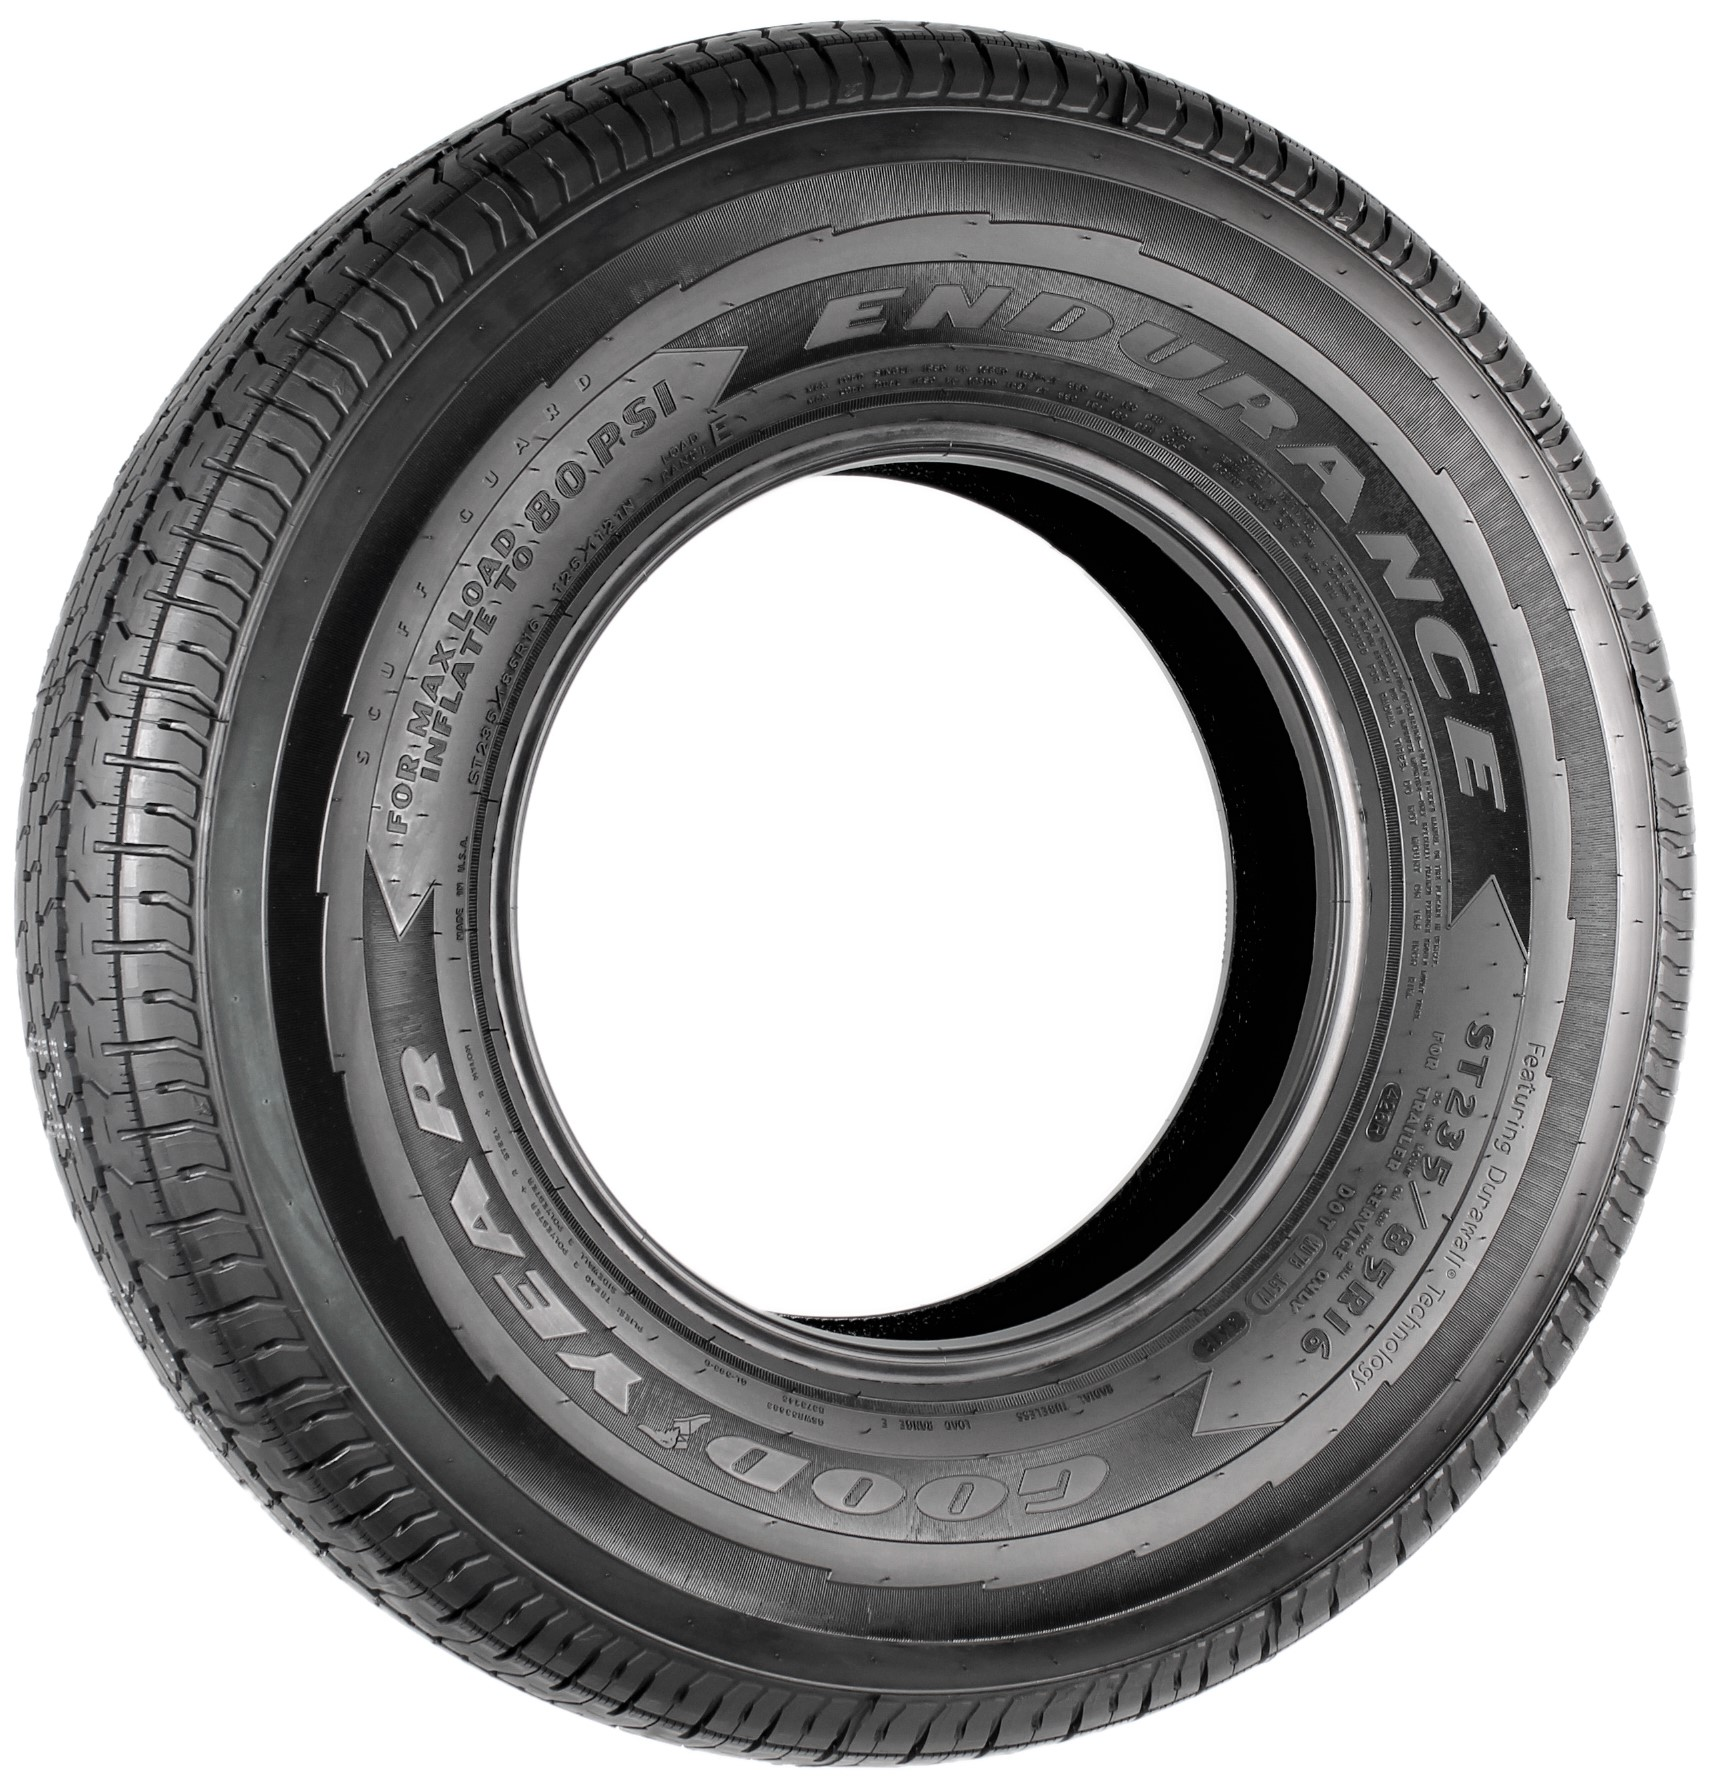 Goodyear Endurance ST235/85R16 LRE Radial Trailer Tire Image